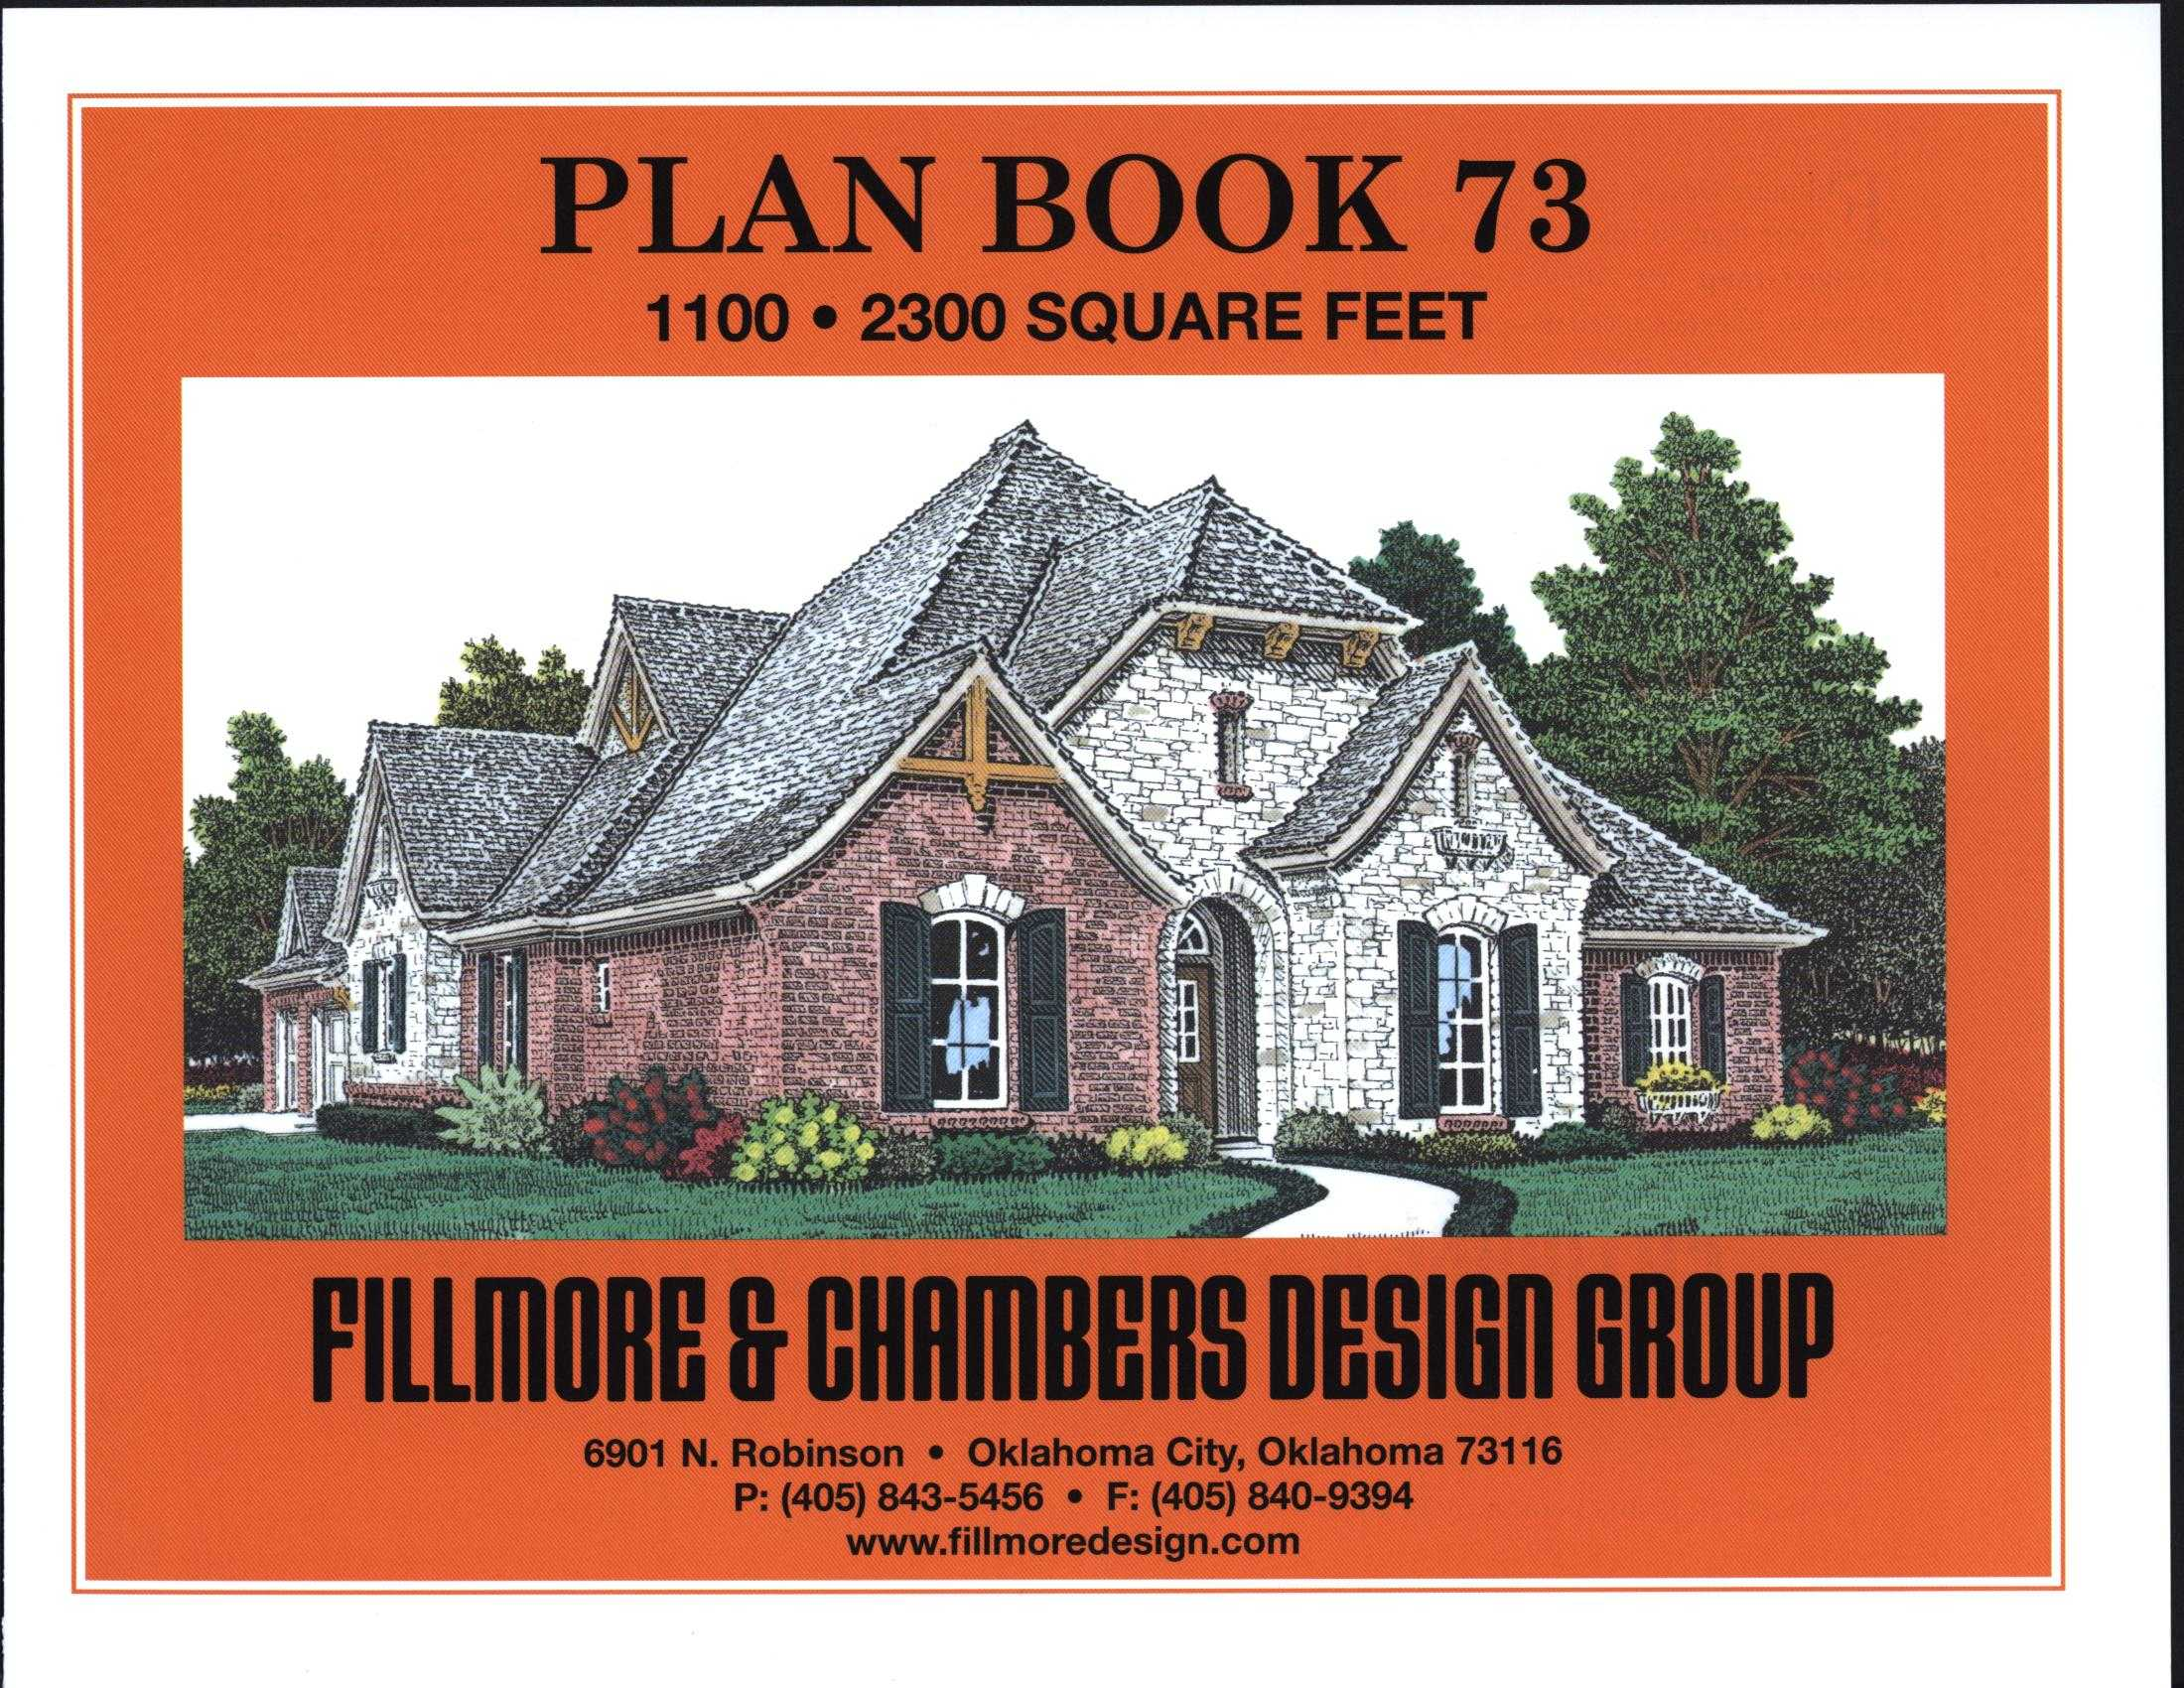 House plans by fillmore design group house plans - House design book ...